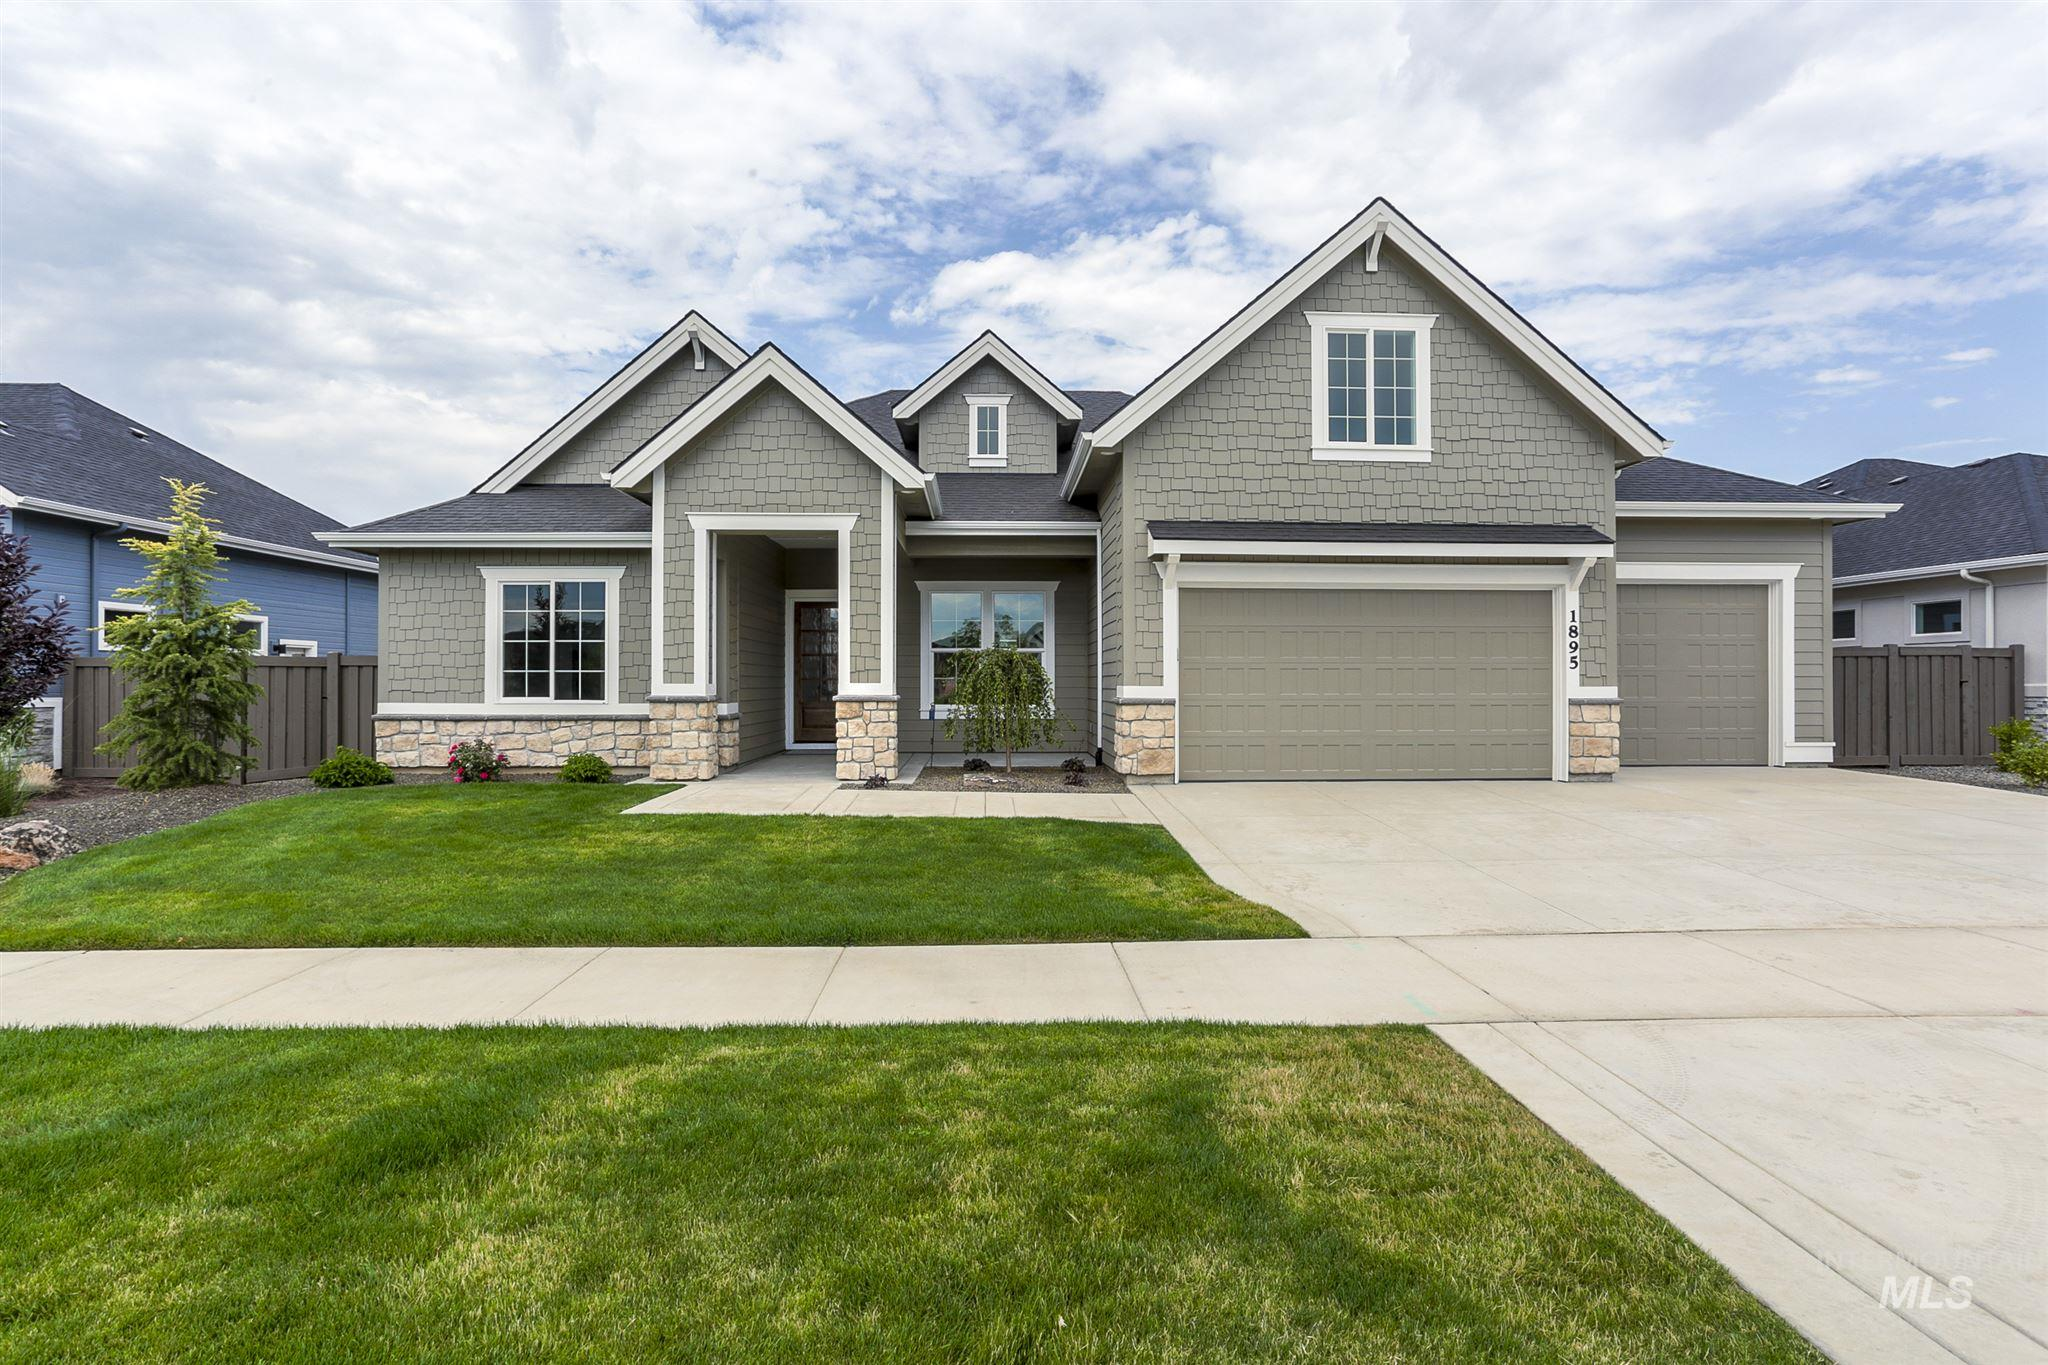 """PHOTOS SIMILAR - The """"Andrew Michael"""" by James Clyde Homes. All the bells and whistles you've come to expect from James Clyde: Extensive hardwood, amazing SS Thermador appliances, custom cabinetry, breathtaking trim work & detail that only a true craftsman can deliver! The large Secret and Bonus room. Check out the oversized garage and epoxy flooring! Full landscaping front & back plus fencing! What else could you ask for !ESTIMATED COMPLETE DATE OF 8/10/2020 . BTVAI"""